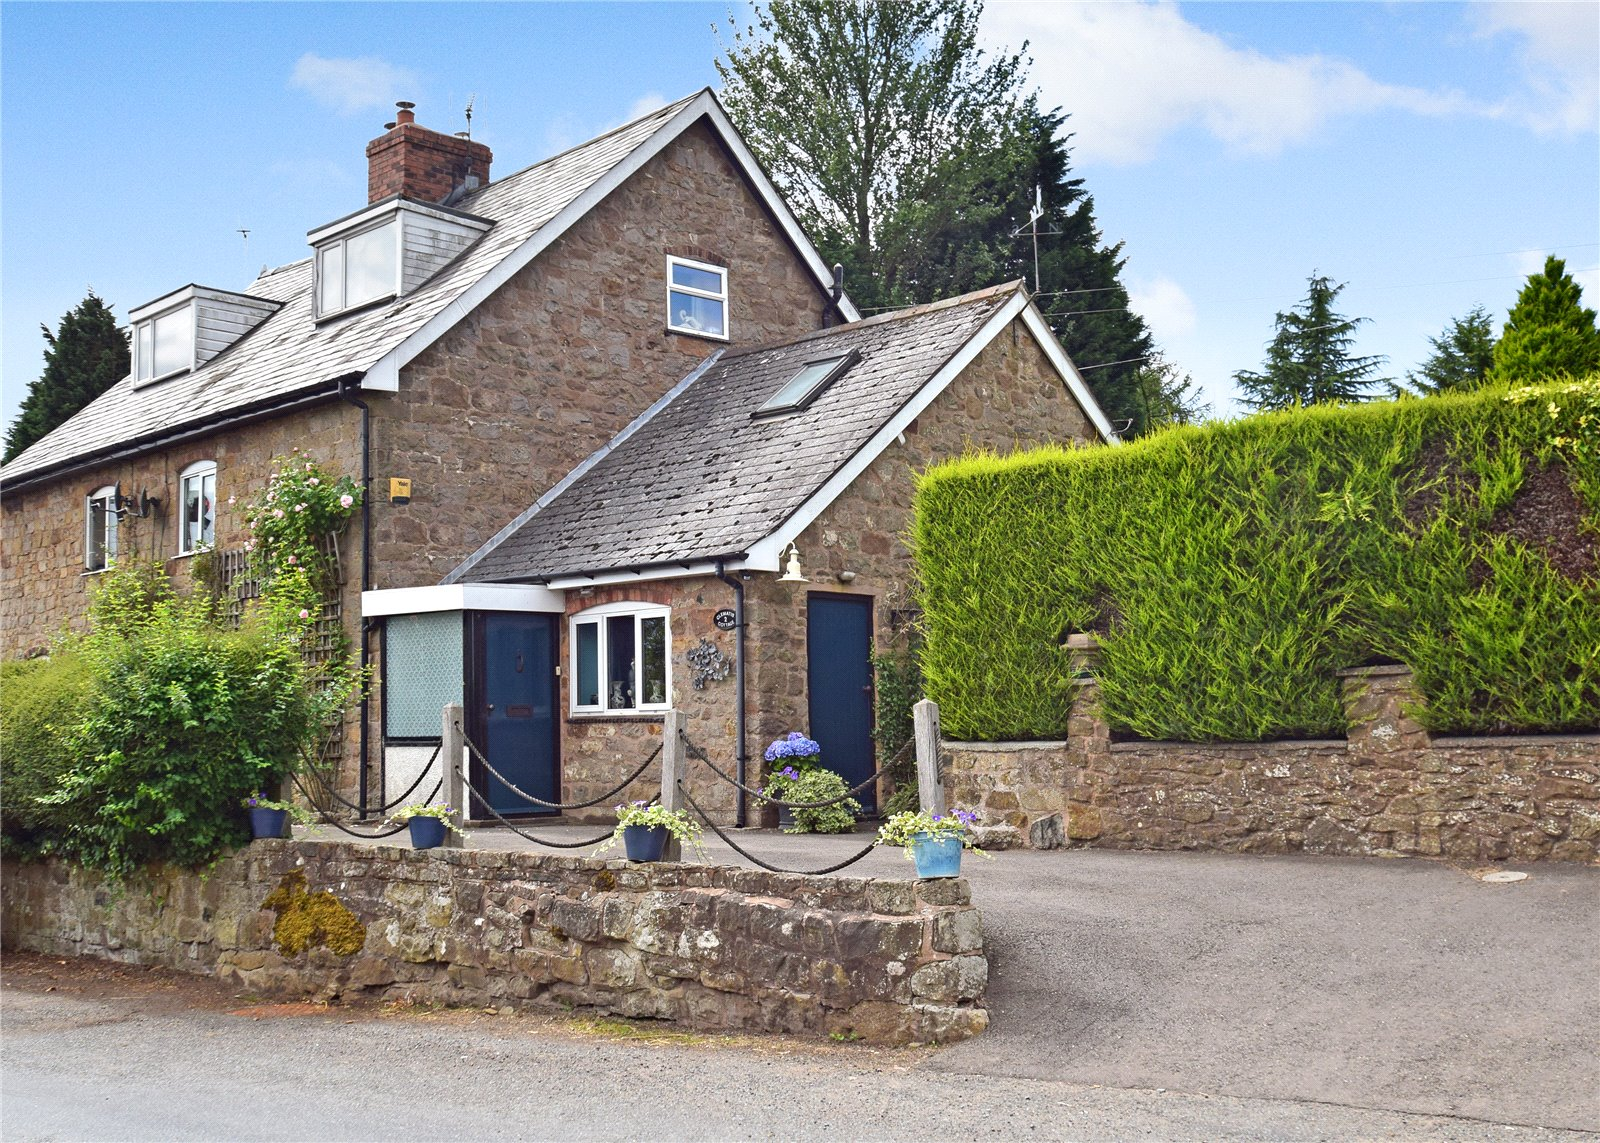 2 Clematis Cottage, Hopton Bank, Hopton Wafers, Kidderminster, DY14